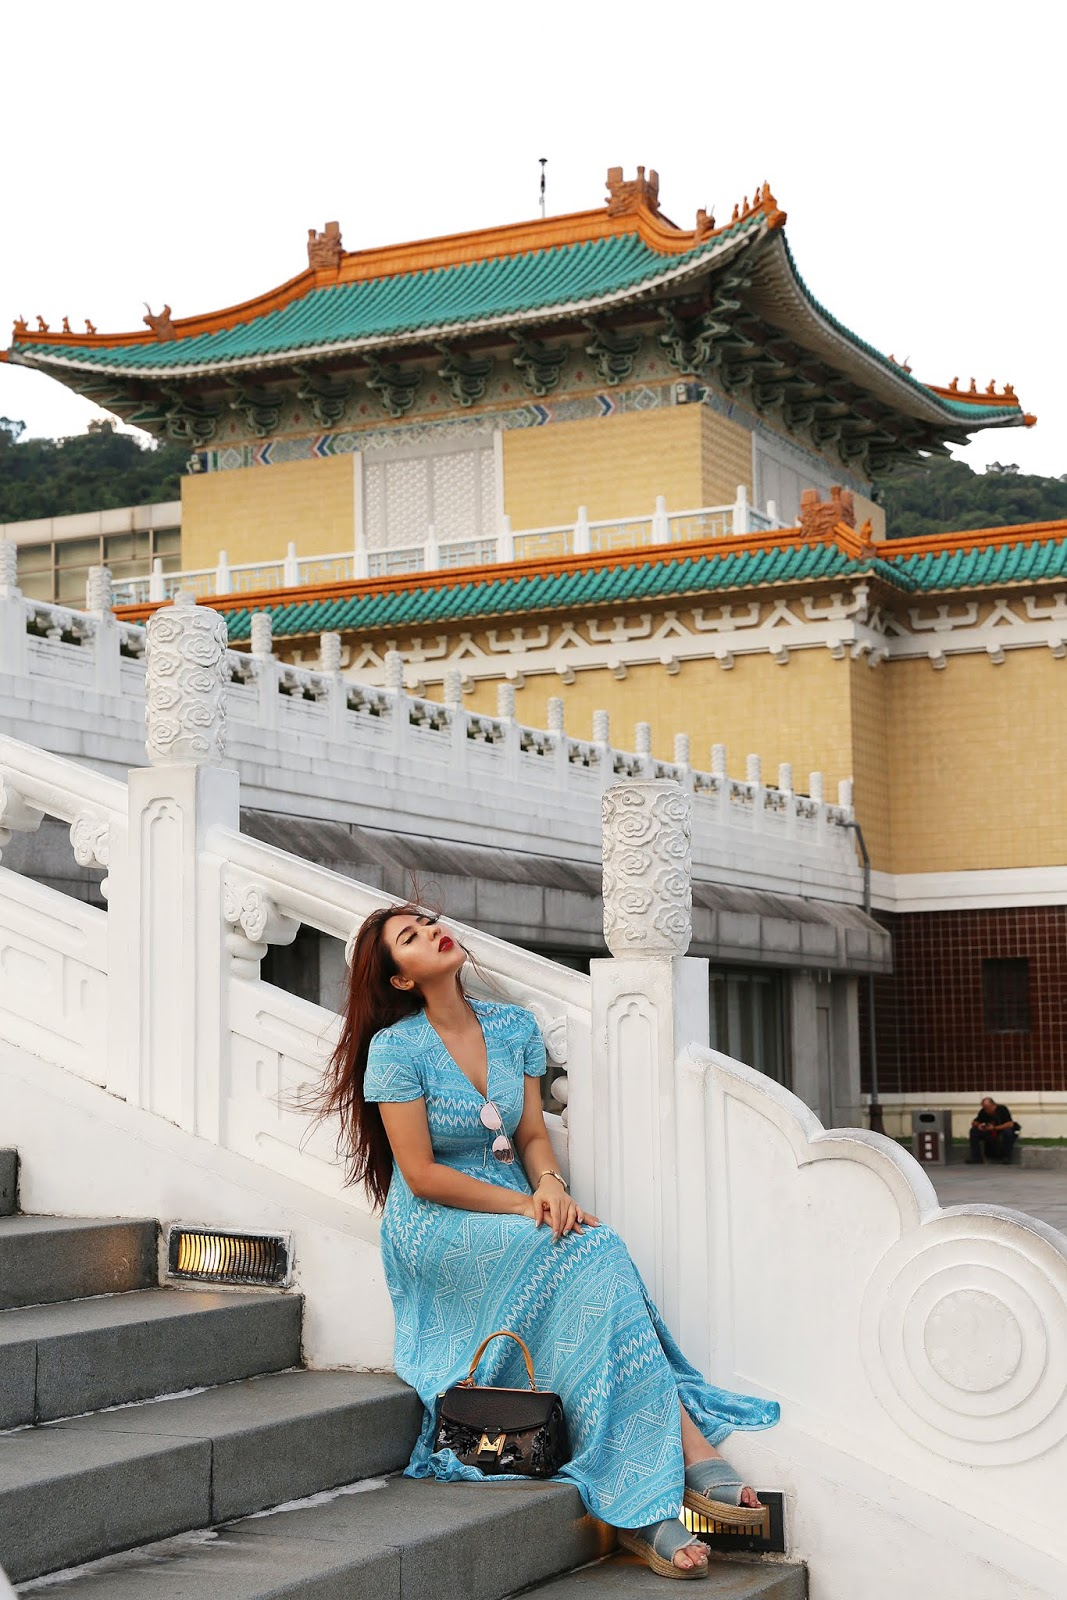 Taipei, Taiwan: A day of Chinese Art and Fine Dining at National Palace Museum & Silks Palace Restaurant